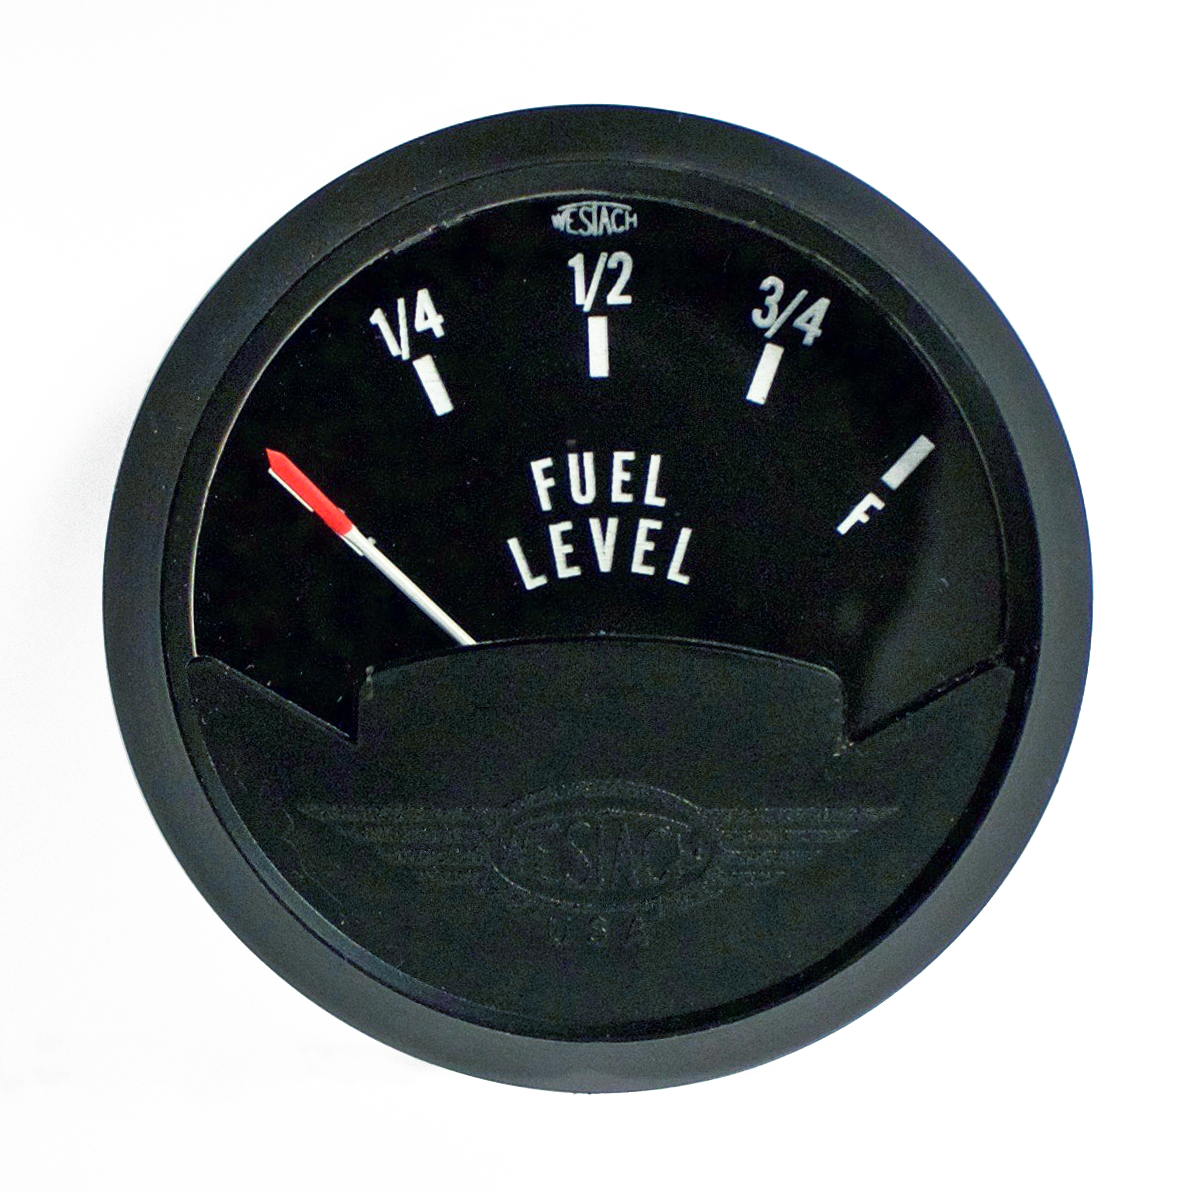 Westach Tachometer Wiring Round Single Fuel Level Gauges 1192x1192